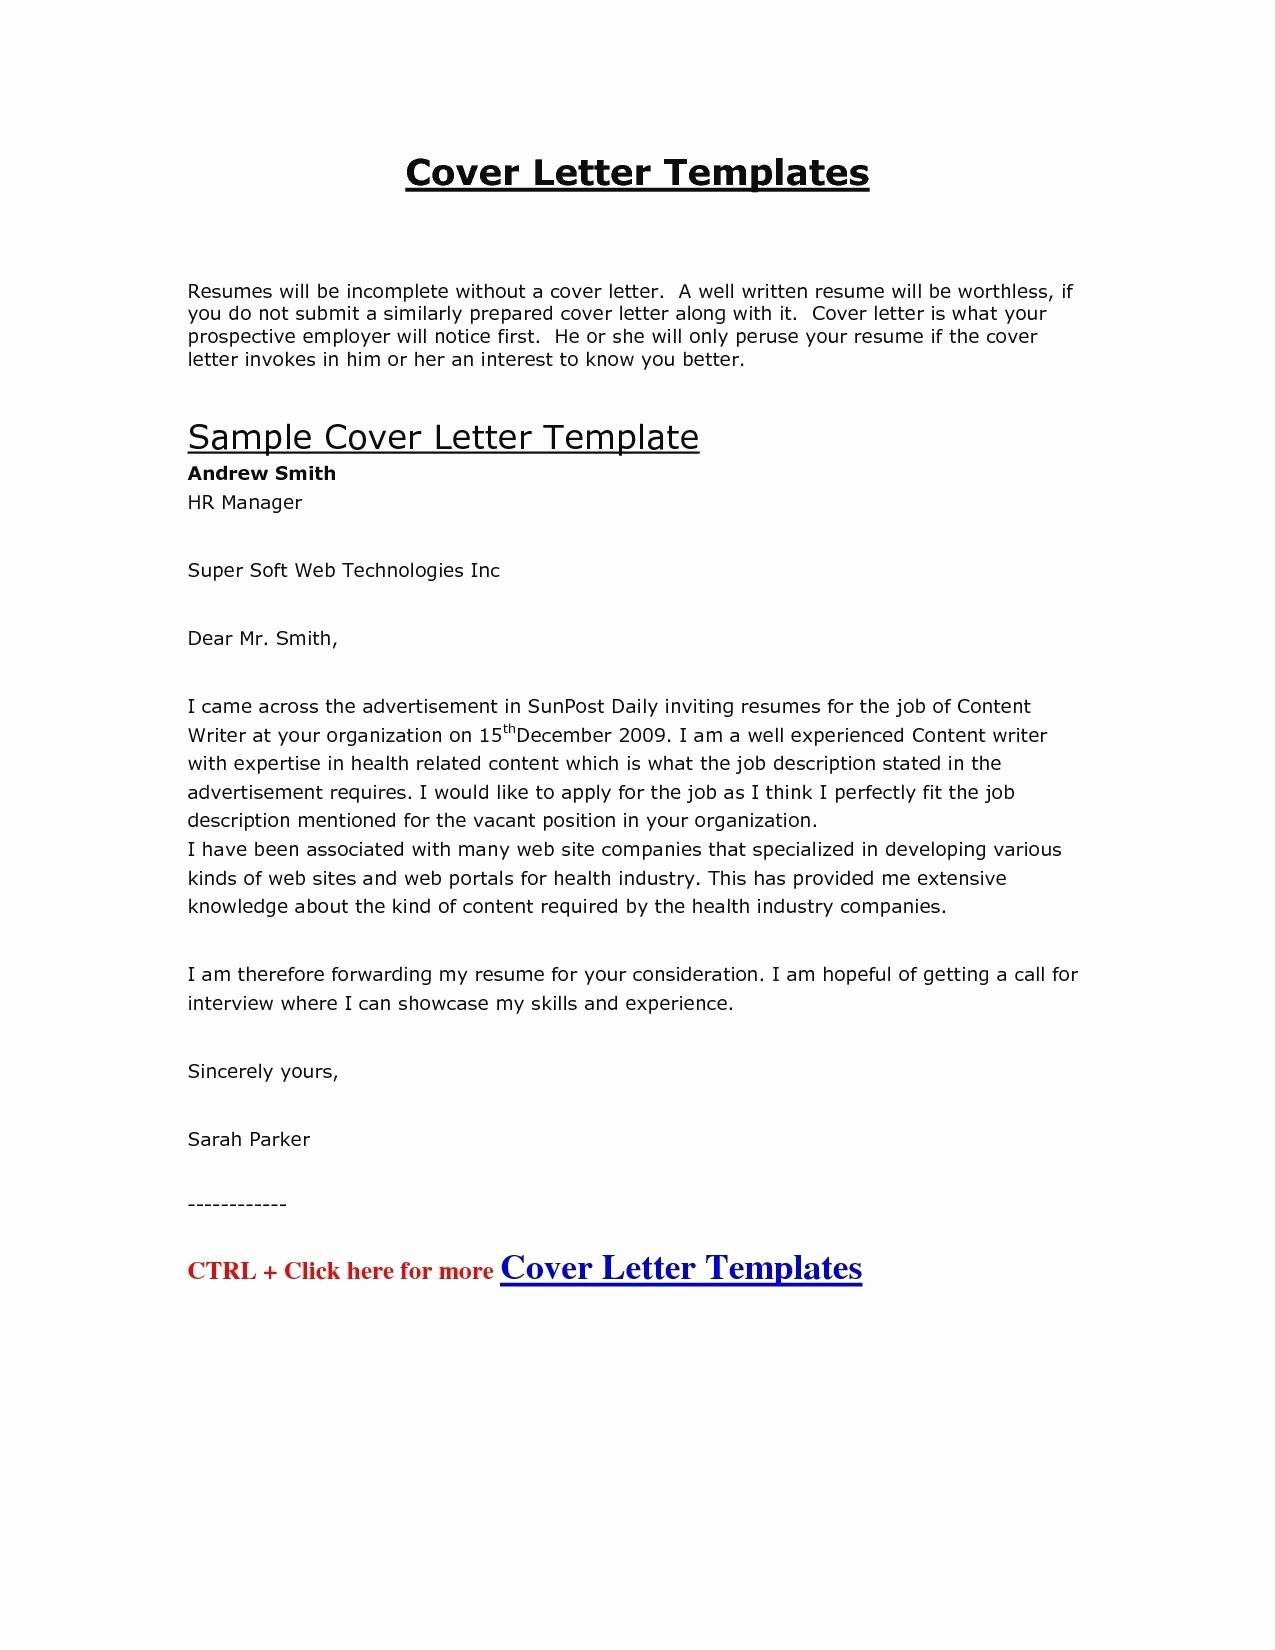 Successful Cover Letter Template - Job Application Letter format Template Copy Cover Letter Template Hr